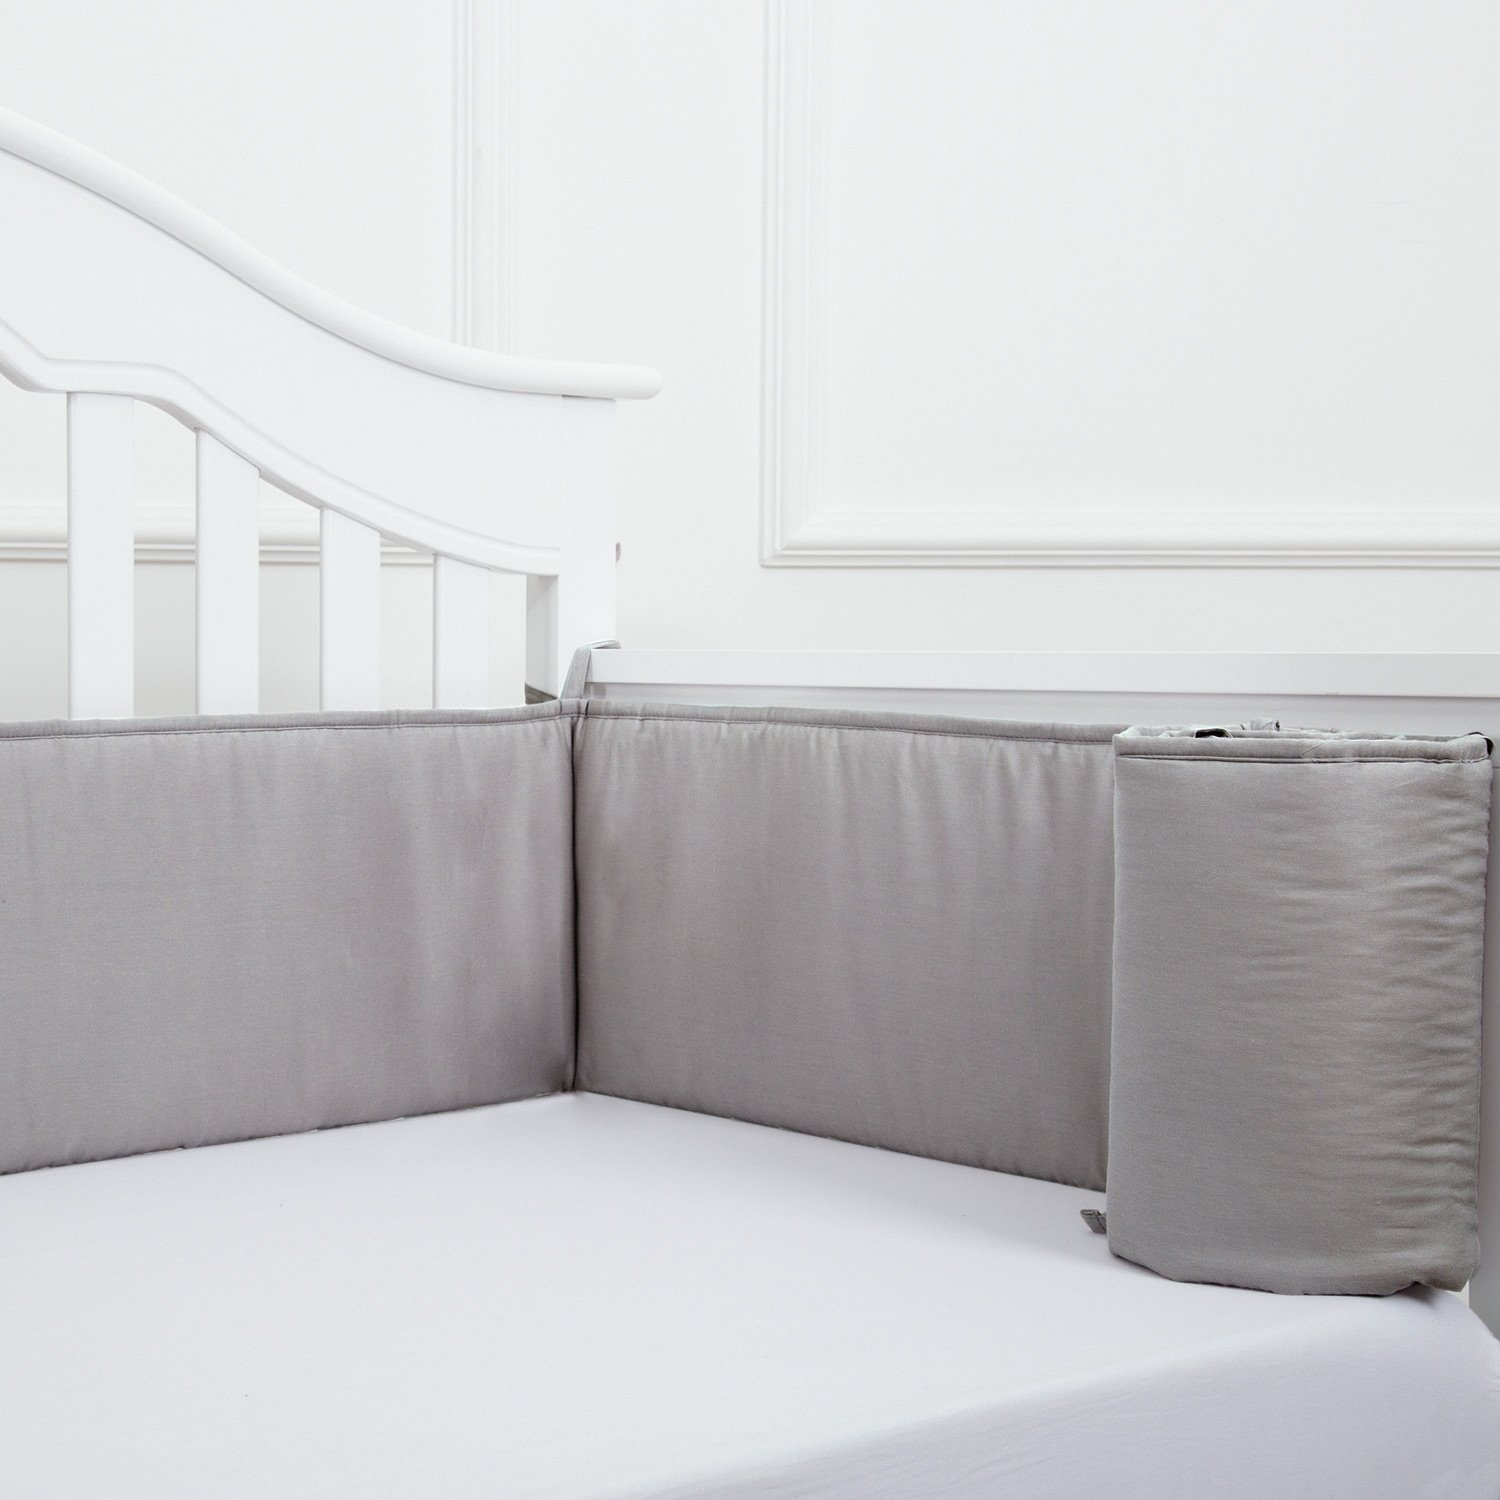 TILLYOU Baby Crib Bumper Pads for Standard Crib Slats Breathable Machine Washable Padded Crib Liner 100% Premium Woven Cotton 1-Piece Safe Bumper Guards Crib Padding, Gray